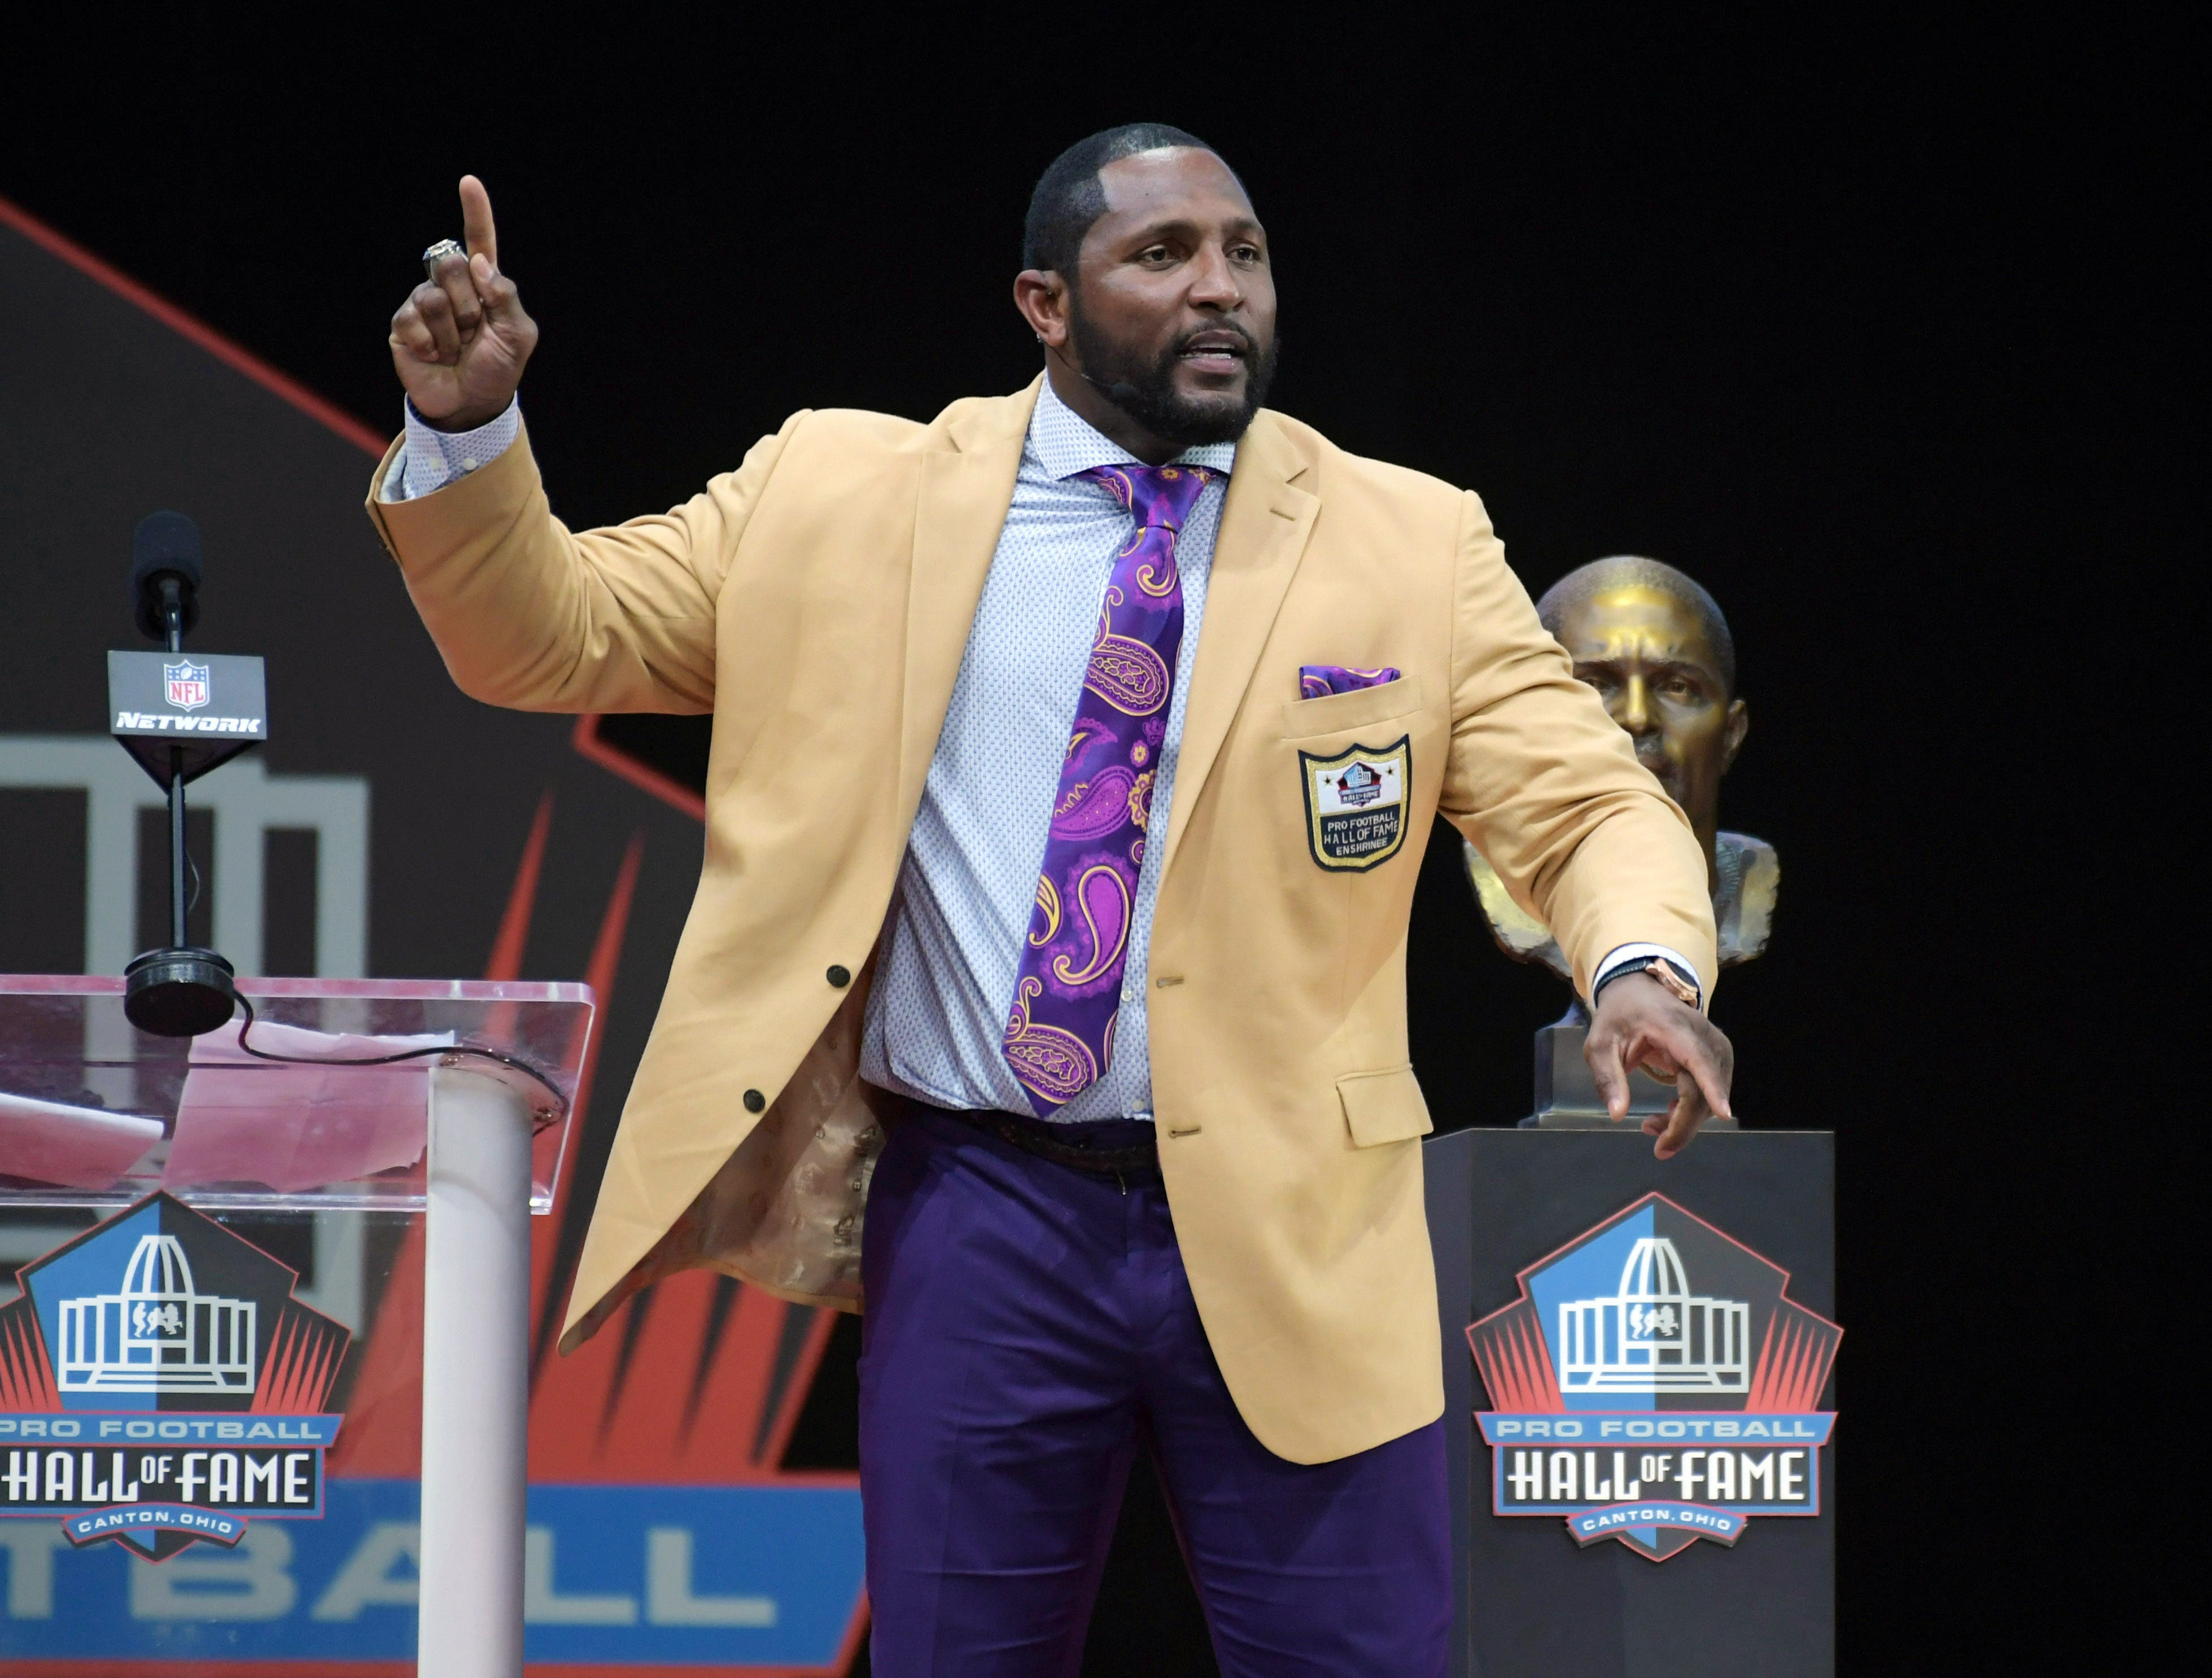 Ray Lewis' Pro Football Hall of Fame speech includes preaching, embarrassment for his kids